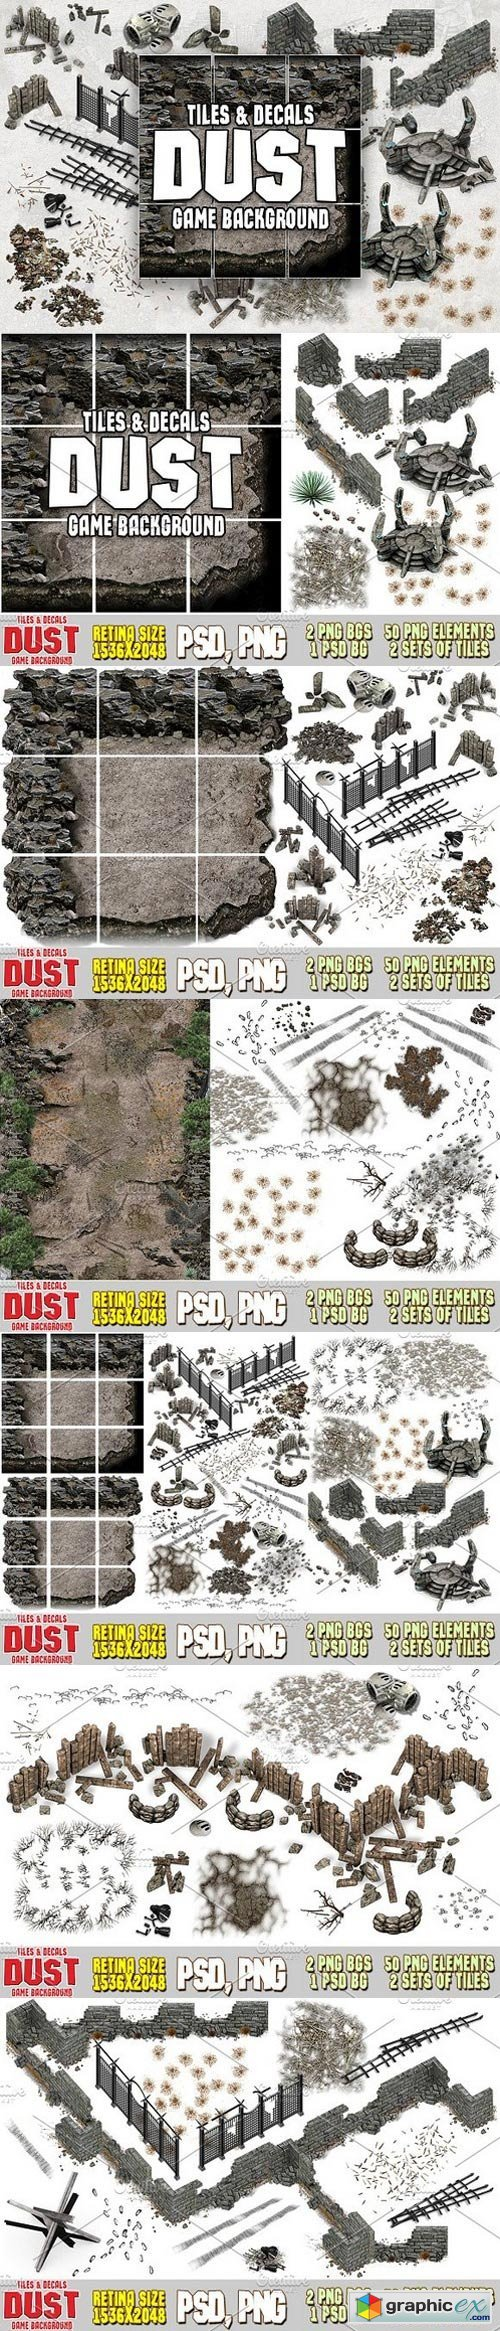 DUST 2D MAP TILES AND DECALS » Free Download Vector Stock Image